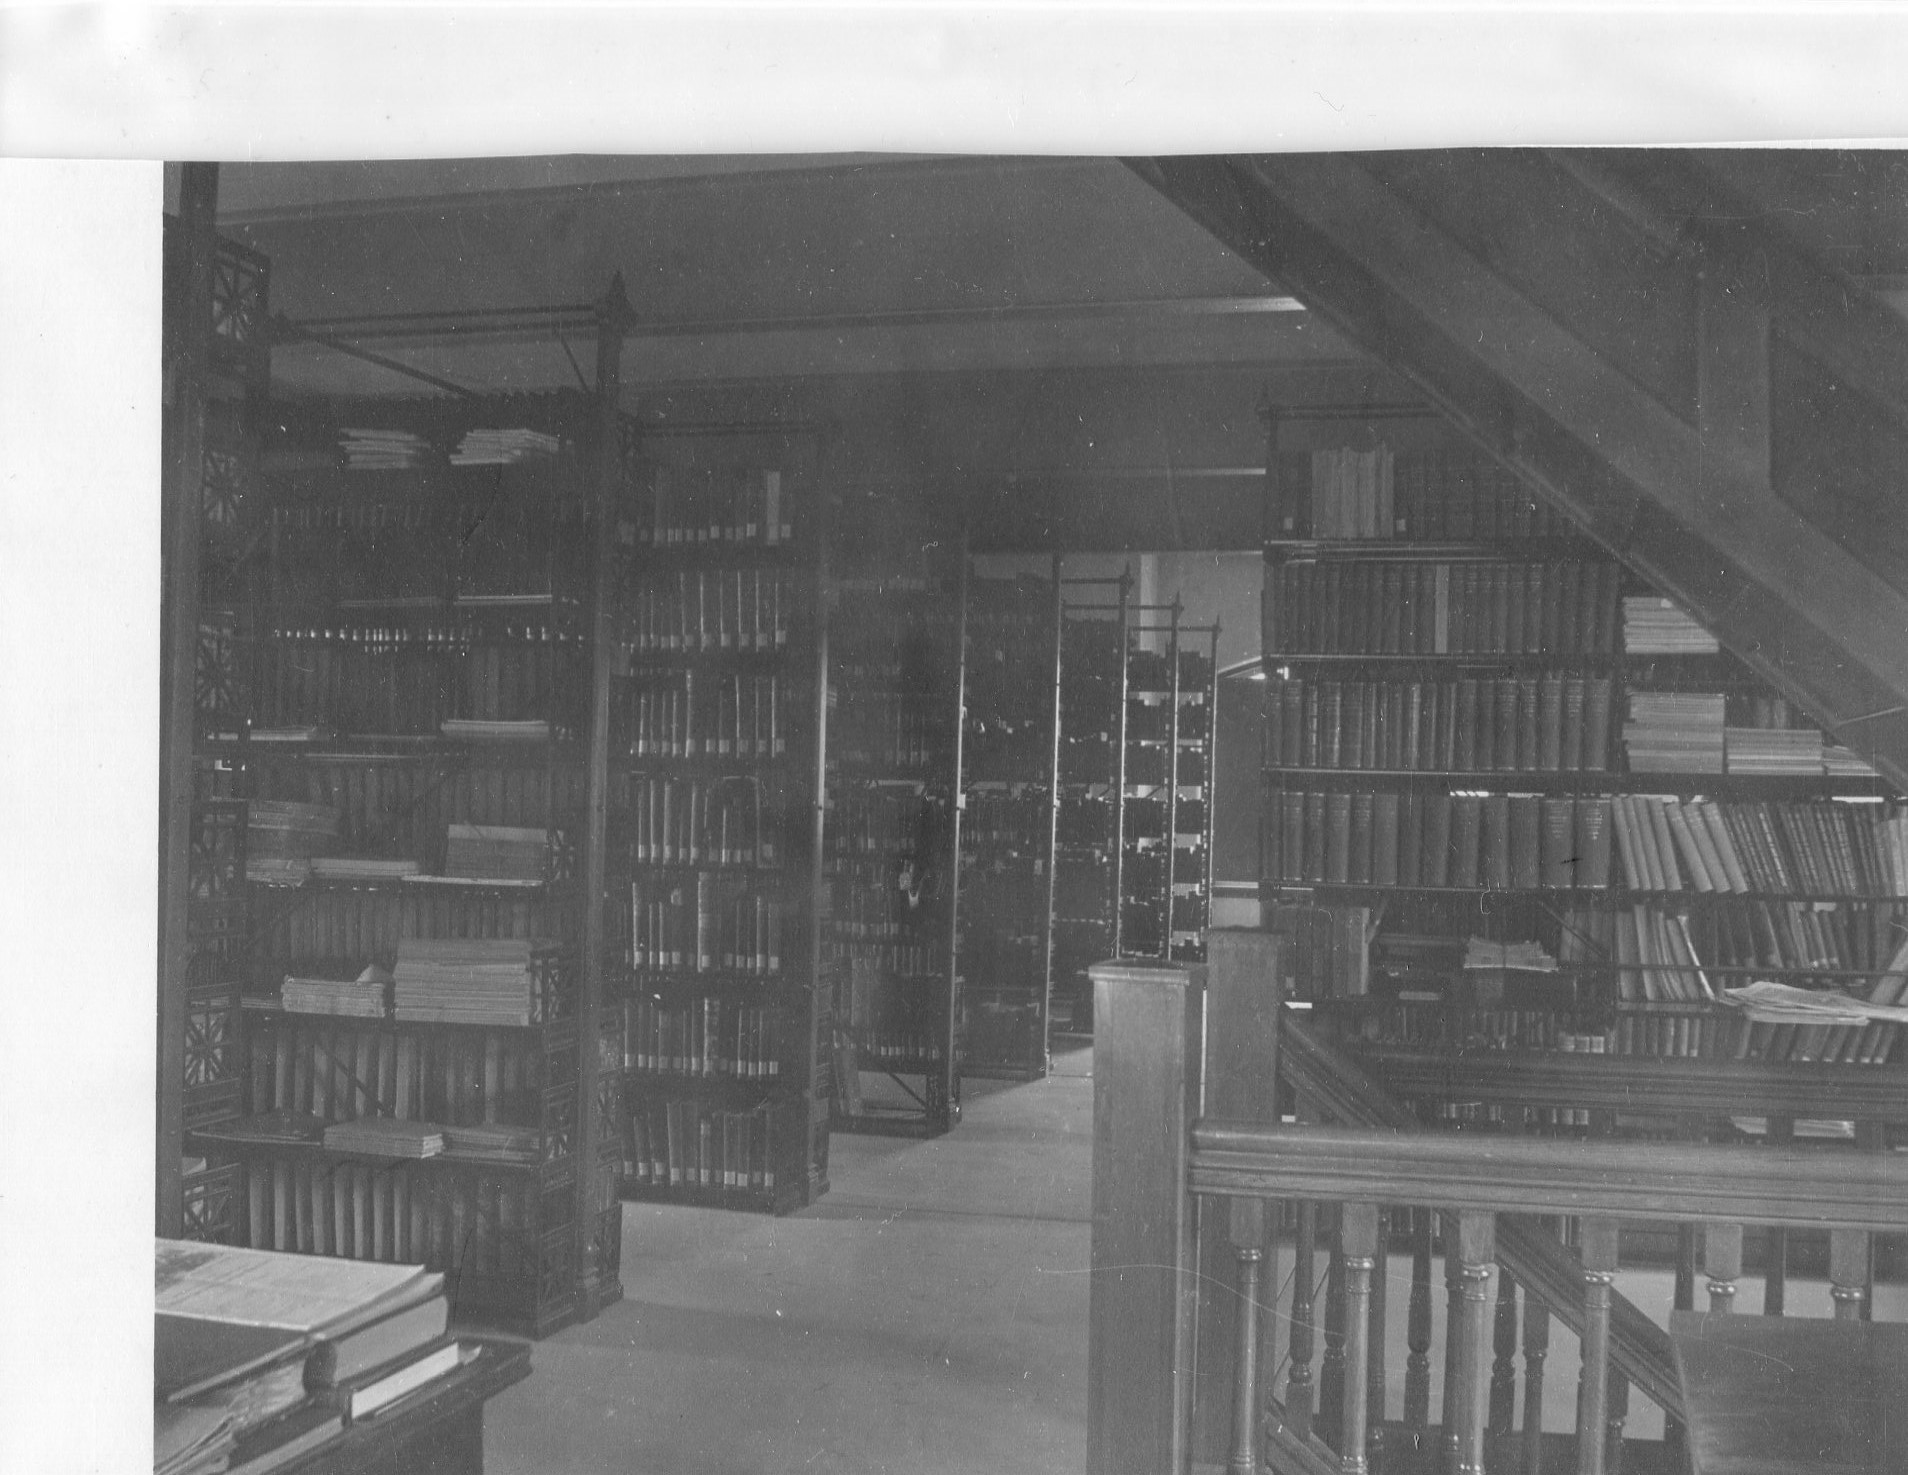 The inside of the library stacks